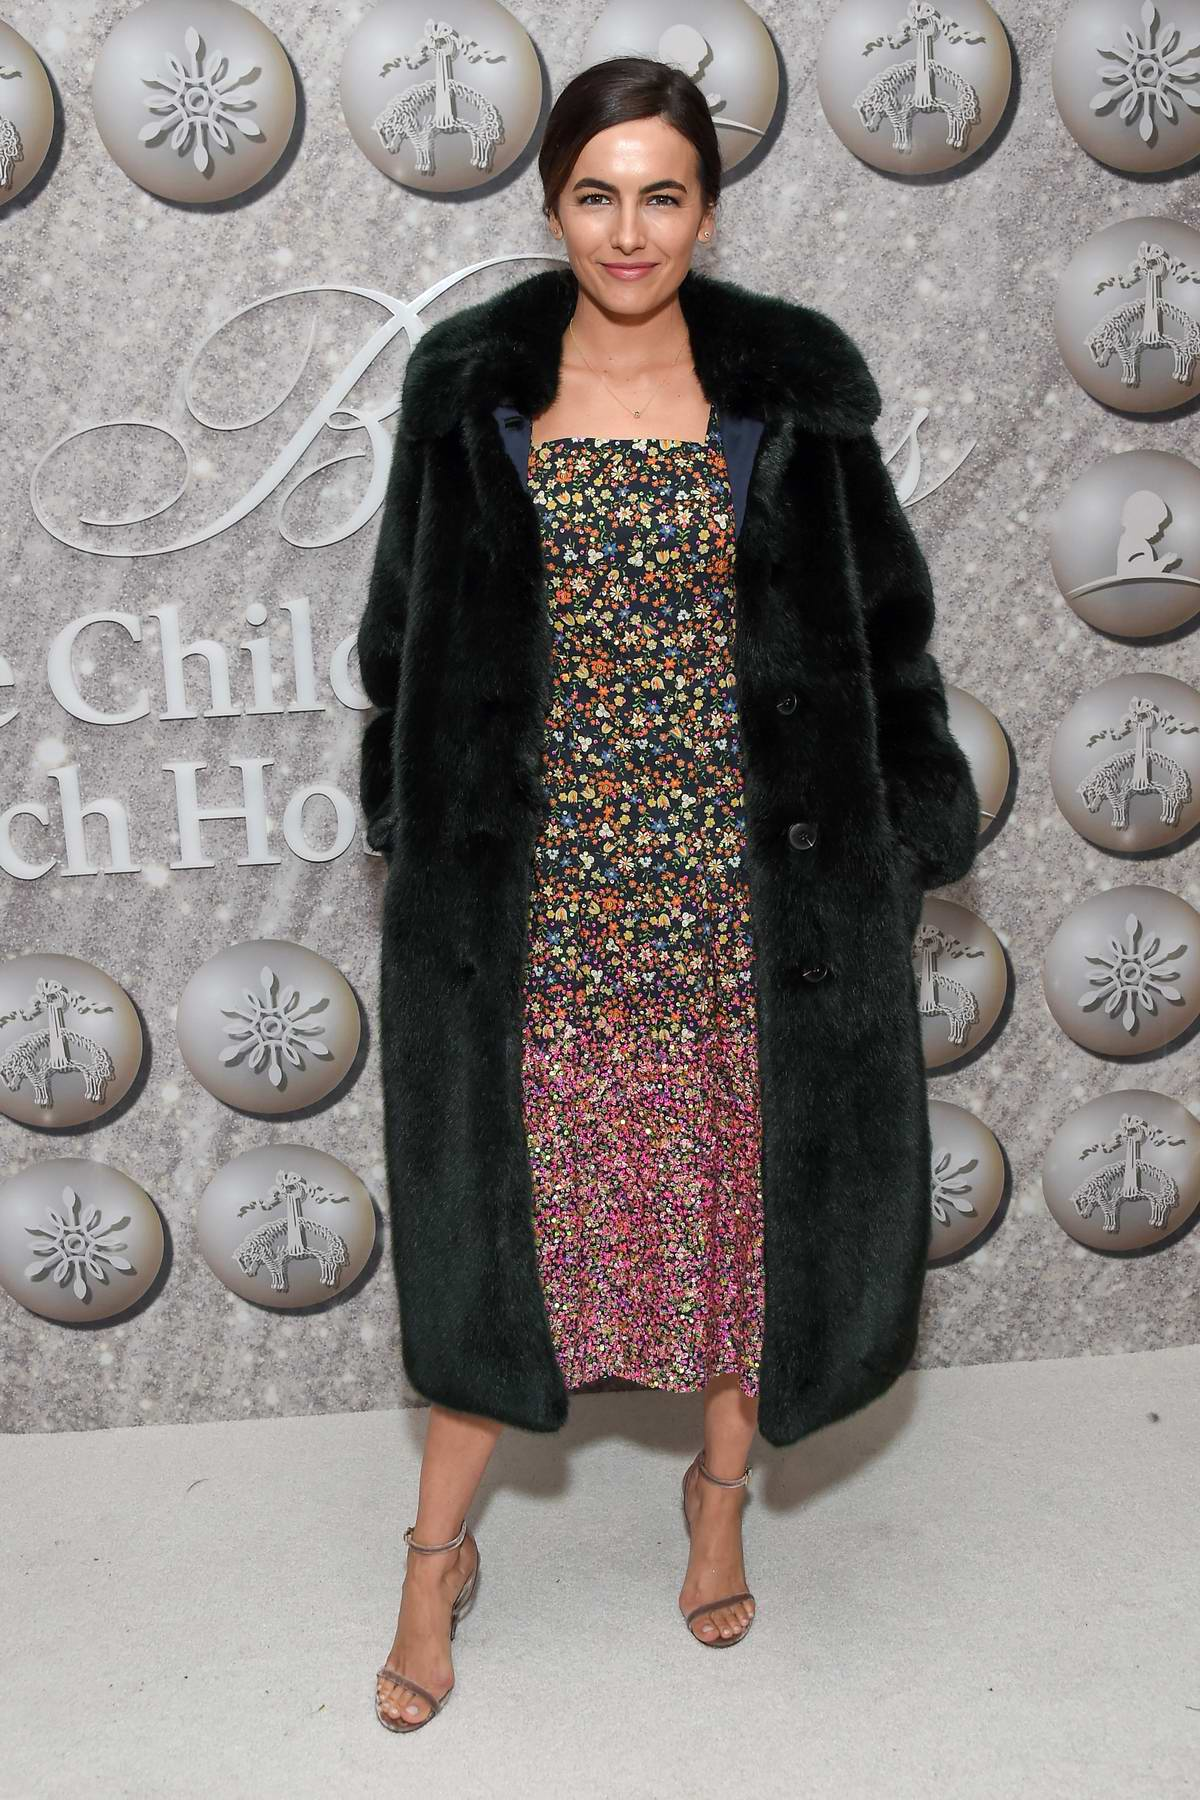 Camilla Belle attends Brooks Brothers Holiday Celebration honoring St. Jude in West Hollywood, Los Angeles